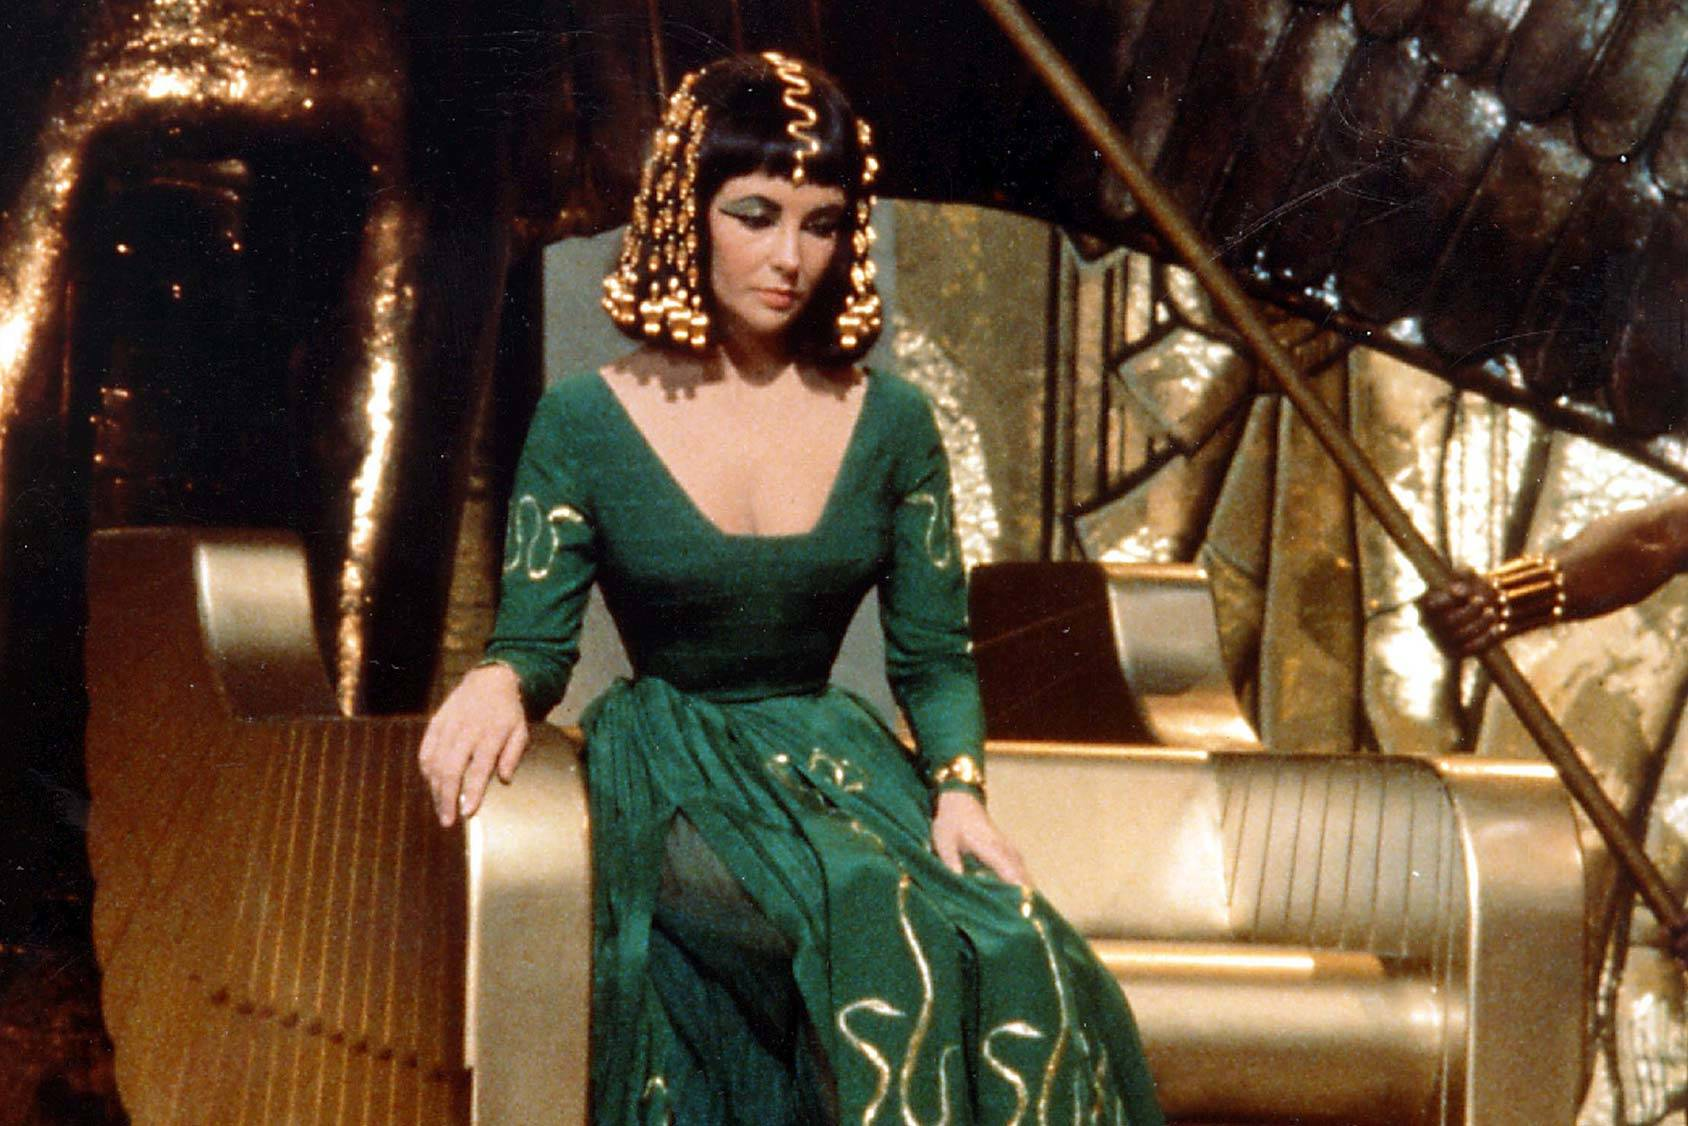 Elizabeth Taylor as Cleopatra in the epic film from 1963, All Over Press.